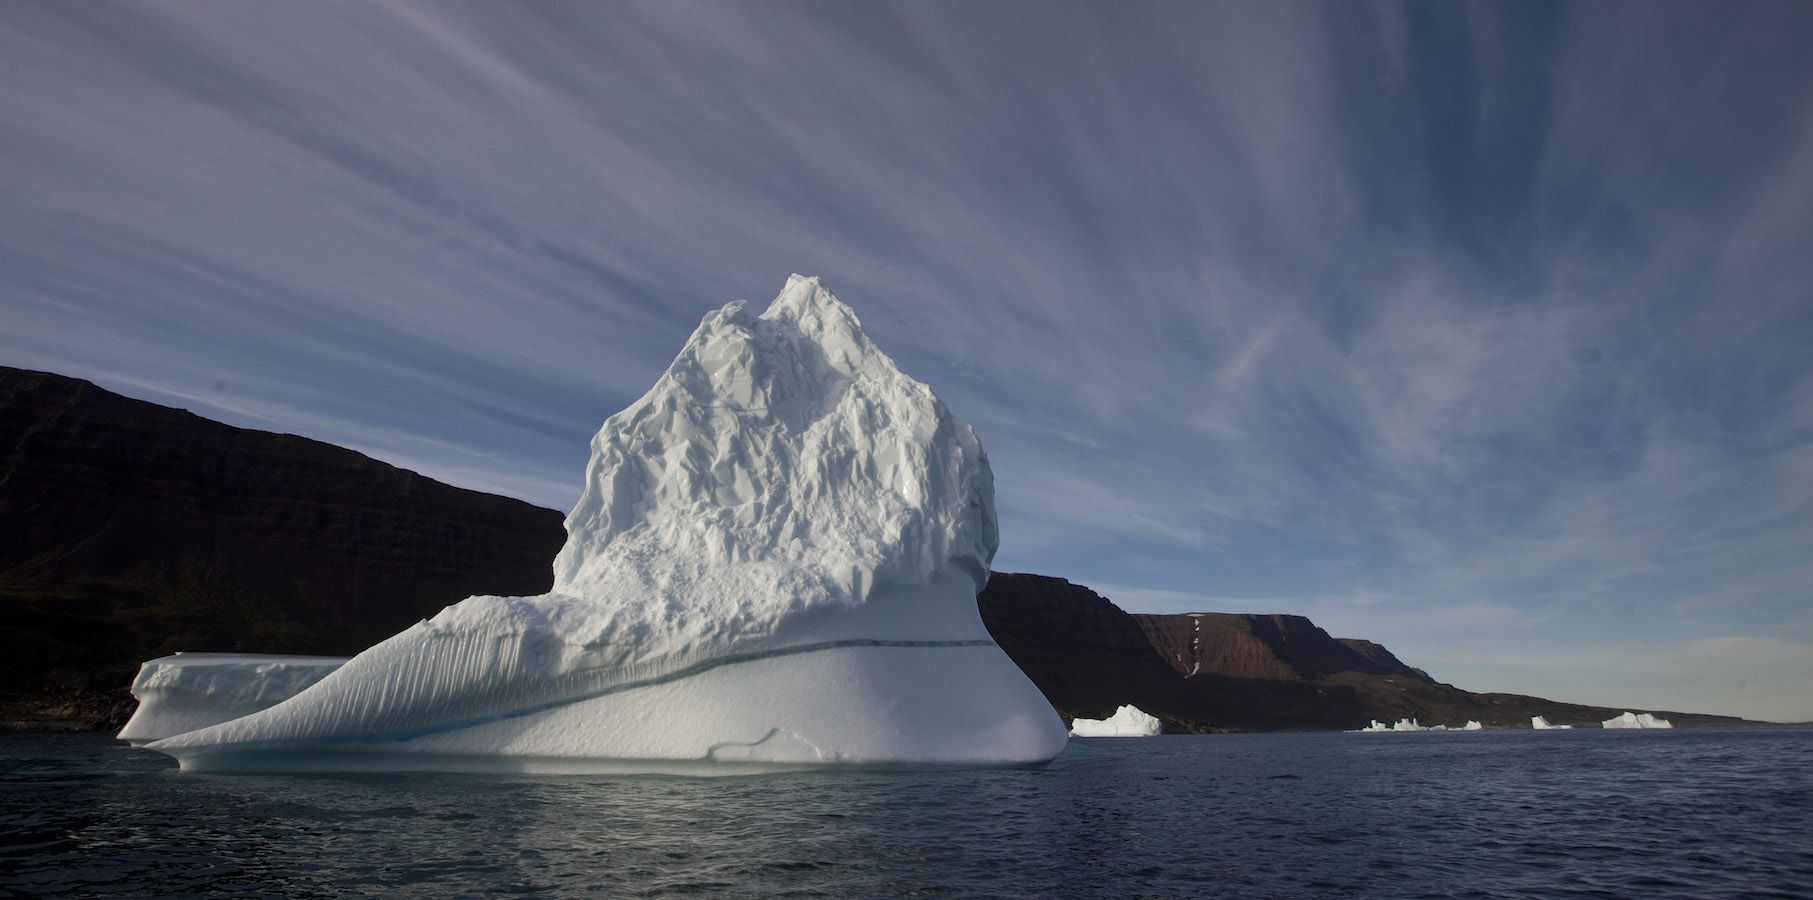 FILE - In this July 21, 2011 file  photo, an iceberg floats in the sea near Qeqertarsuaq, Disko Island, Greenland.  Norway is looking into providing high-speed Internet in one of the few places on Earth where it's not available: the Arctic. Demand for high-speed Internet in the Arctic is expected to grow as shipping, fishing and oil companies move north amid warming temperatures and melting ice.(AP Photo/Brennan Linsley, File)